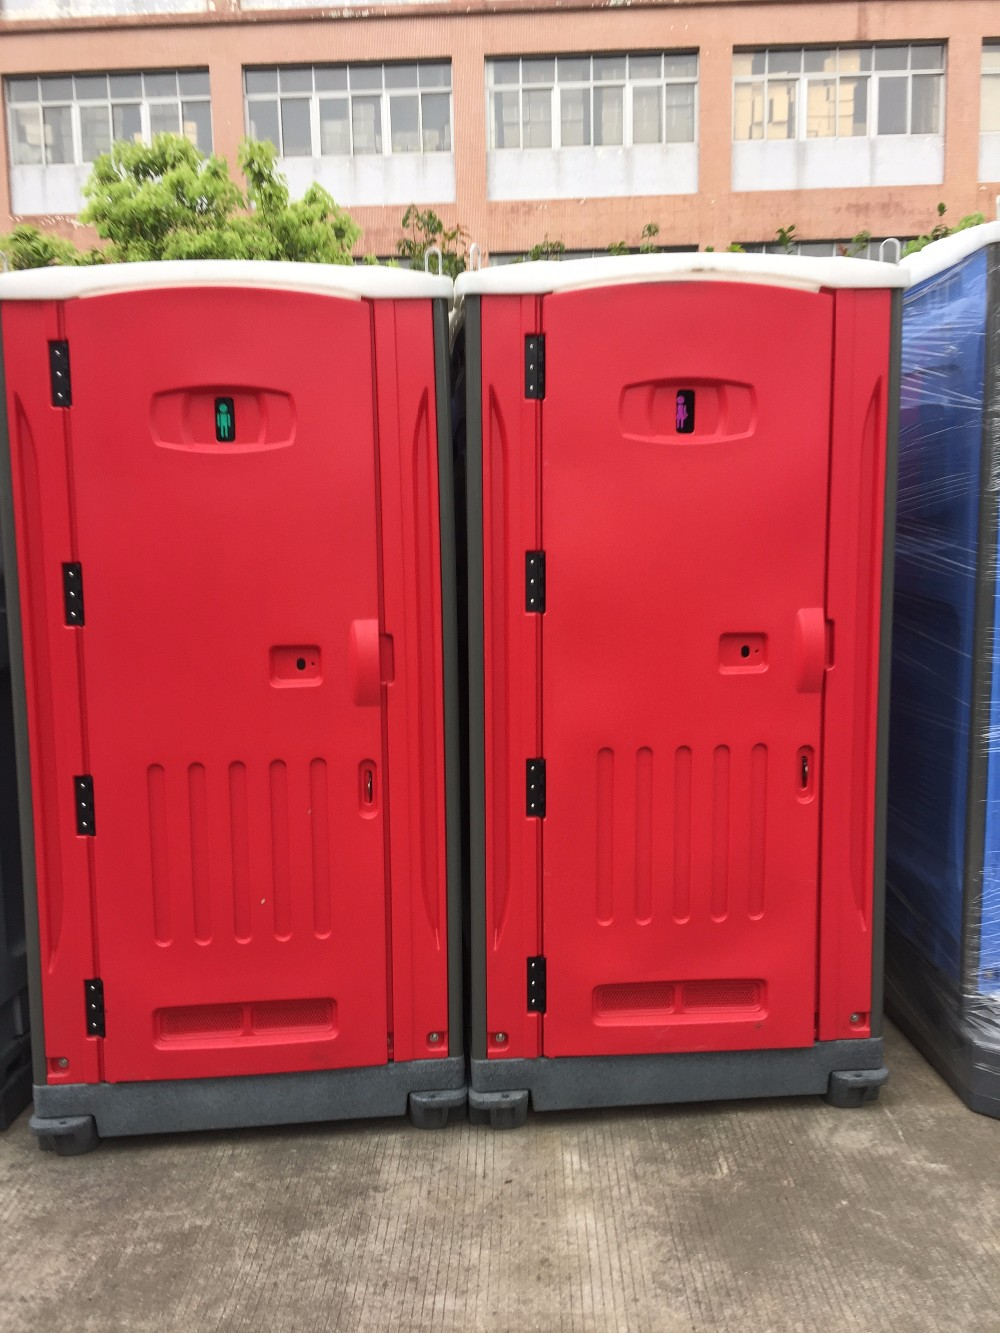 HDPE portable toilet Waterproof Well-designed Portable Toilet Plastic portable toilet